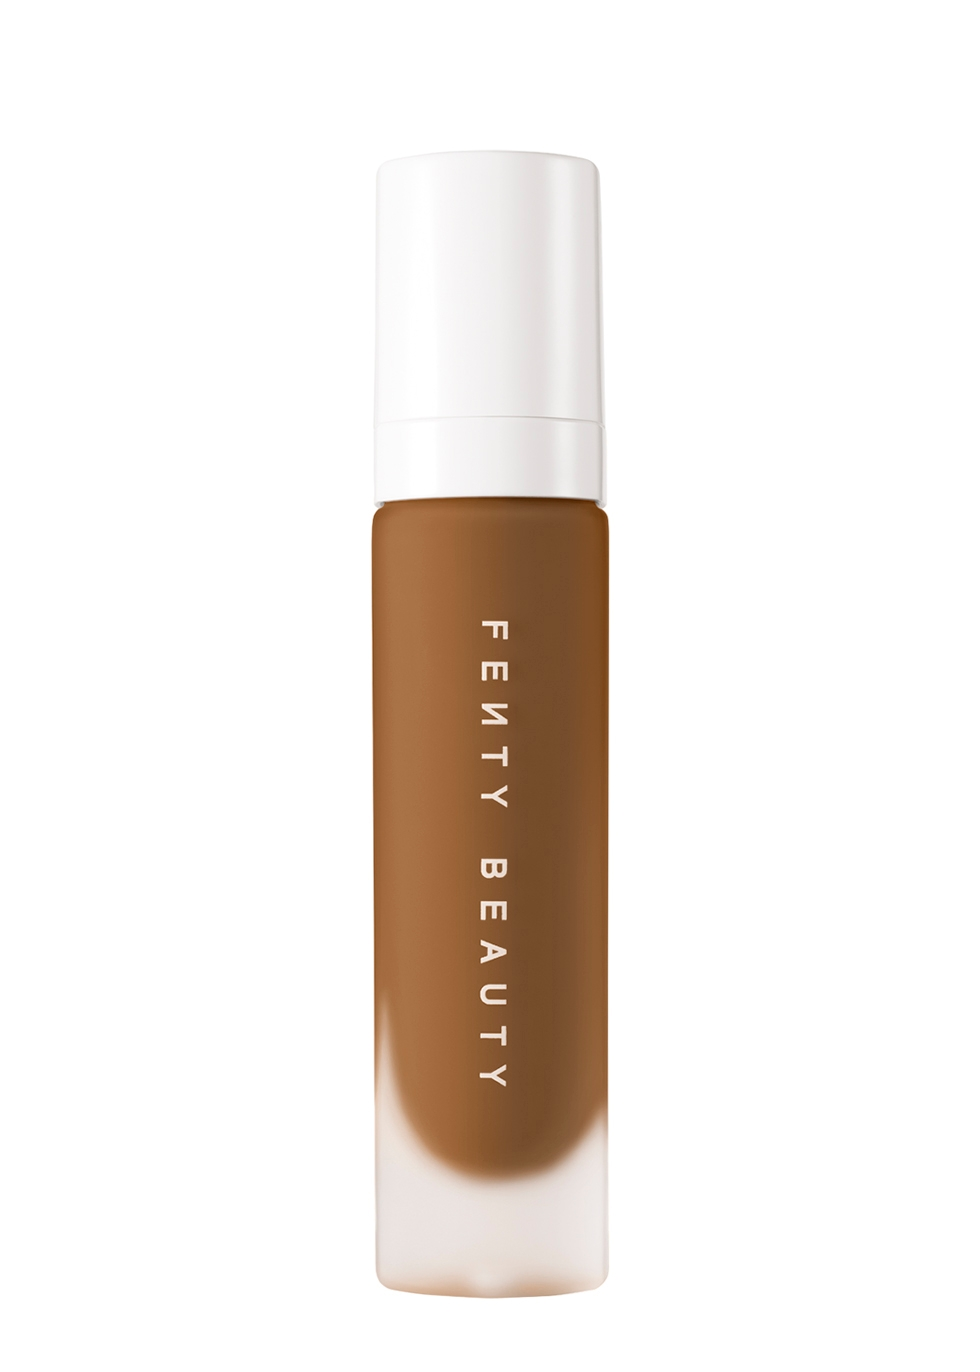 Fenty Beauty Pro Filt R Soft Matte Longwear Foundation 385 Harvey Nichols